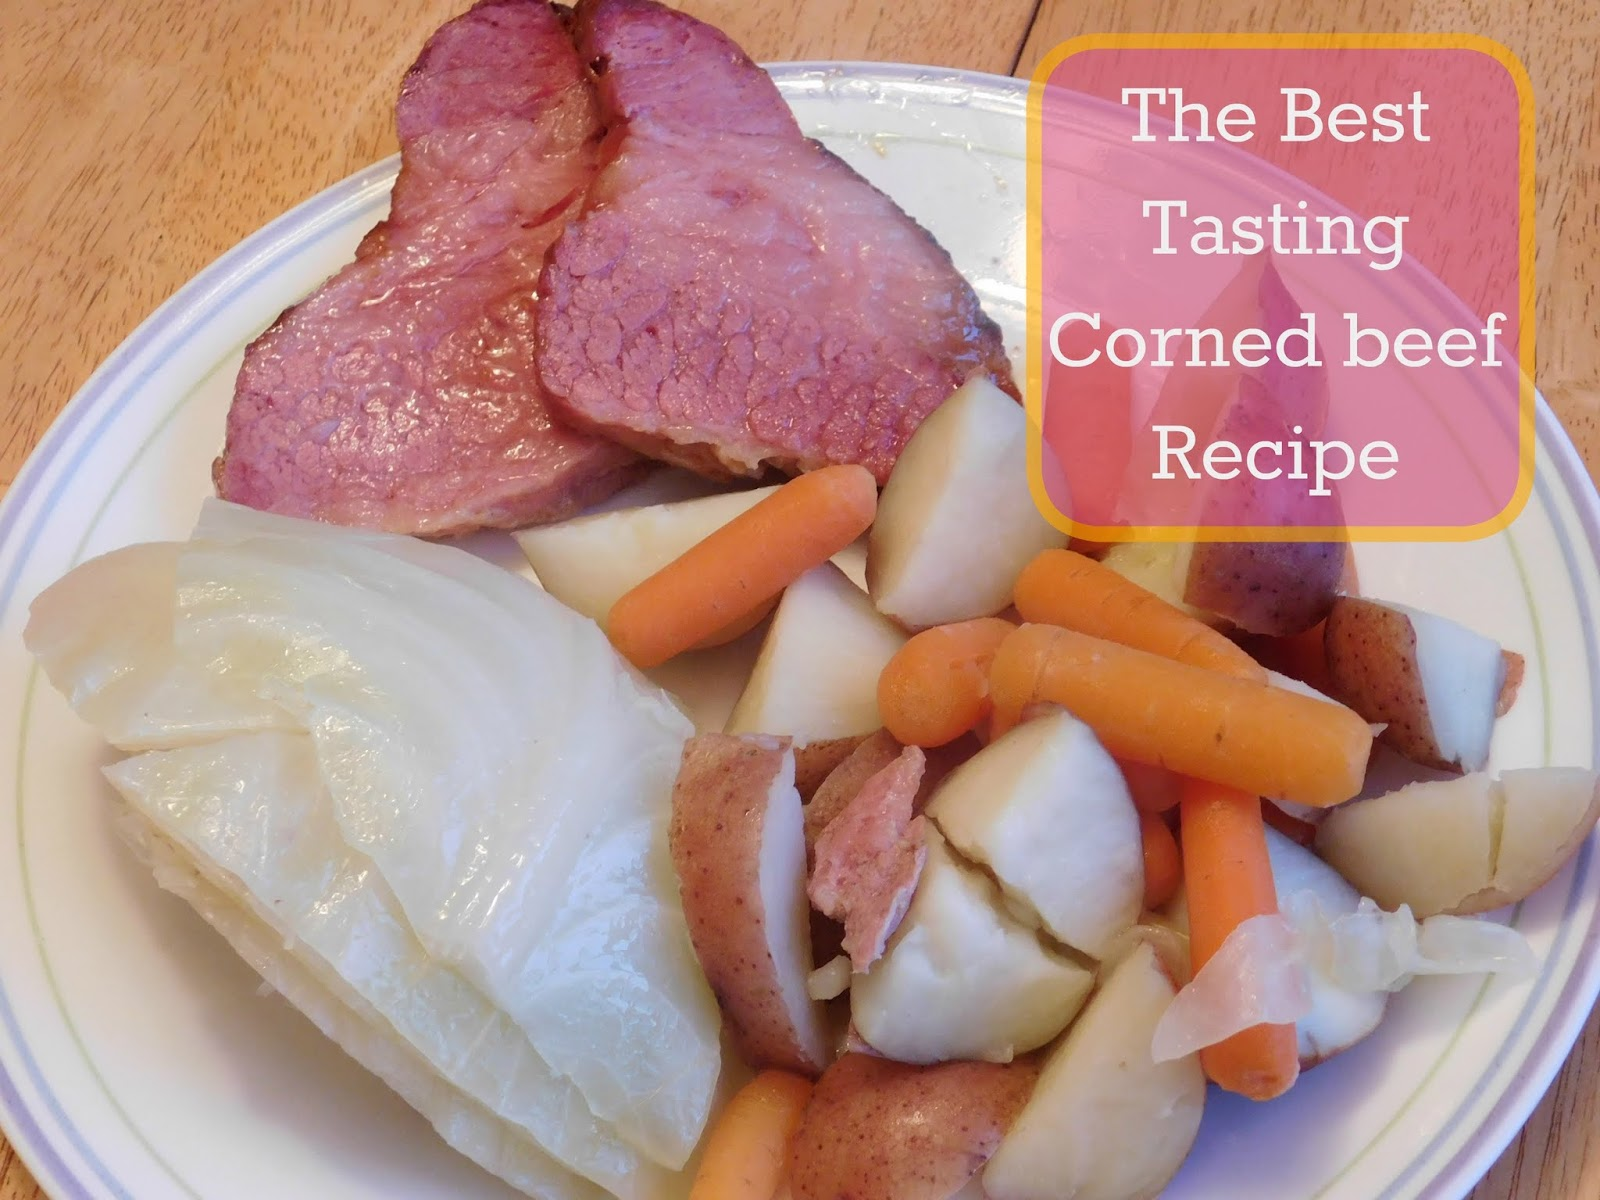 Our Favorite Corned Beef Recipe